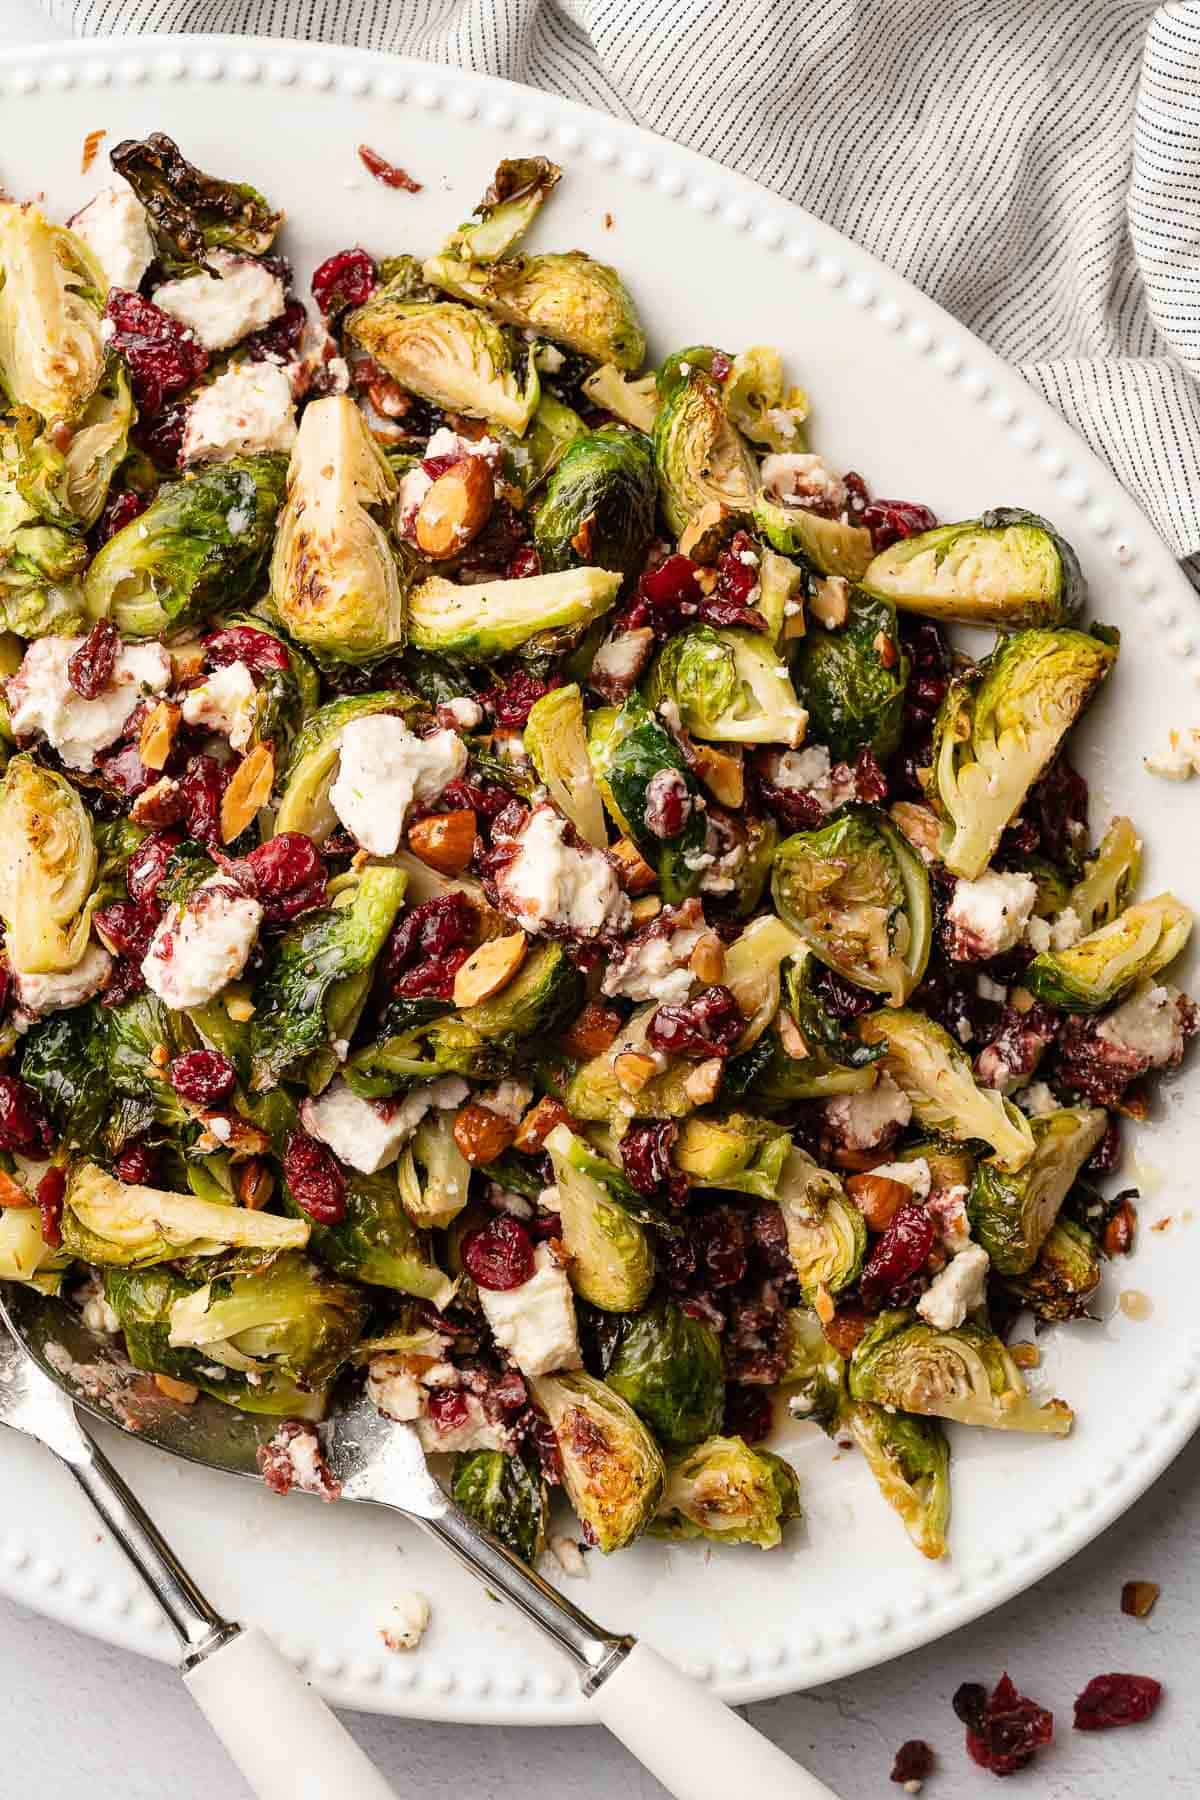 brussels sprouts salad with cranberries on white platter with napkin in background